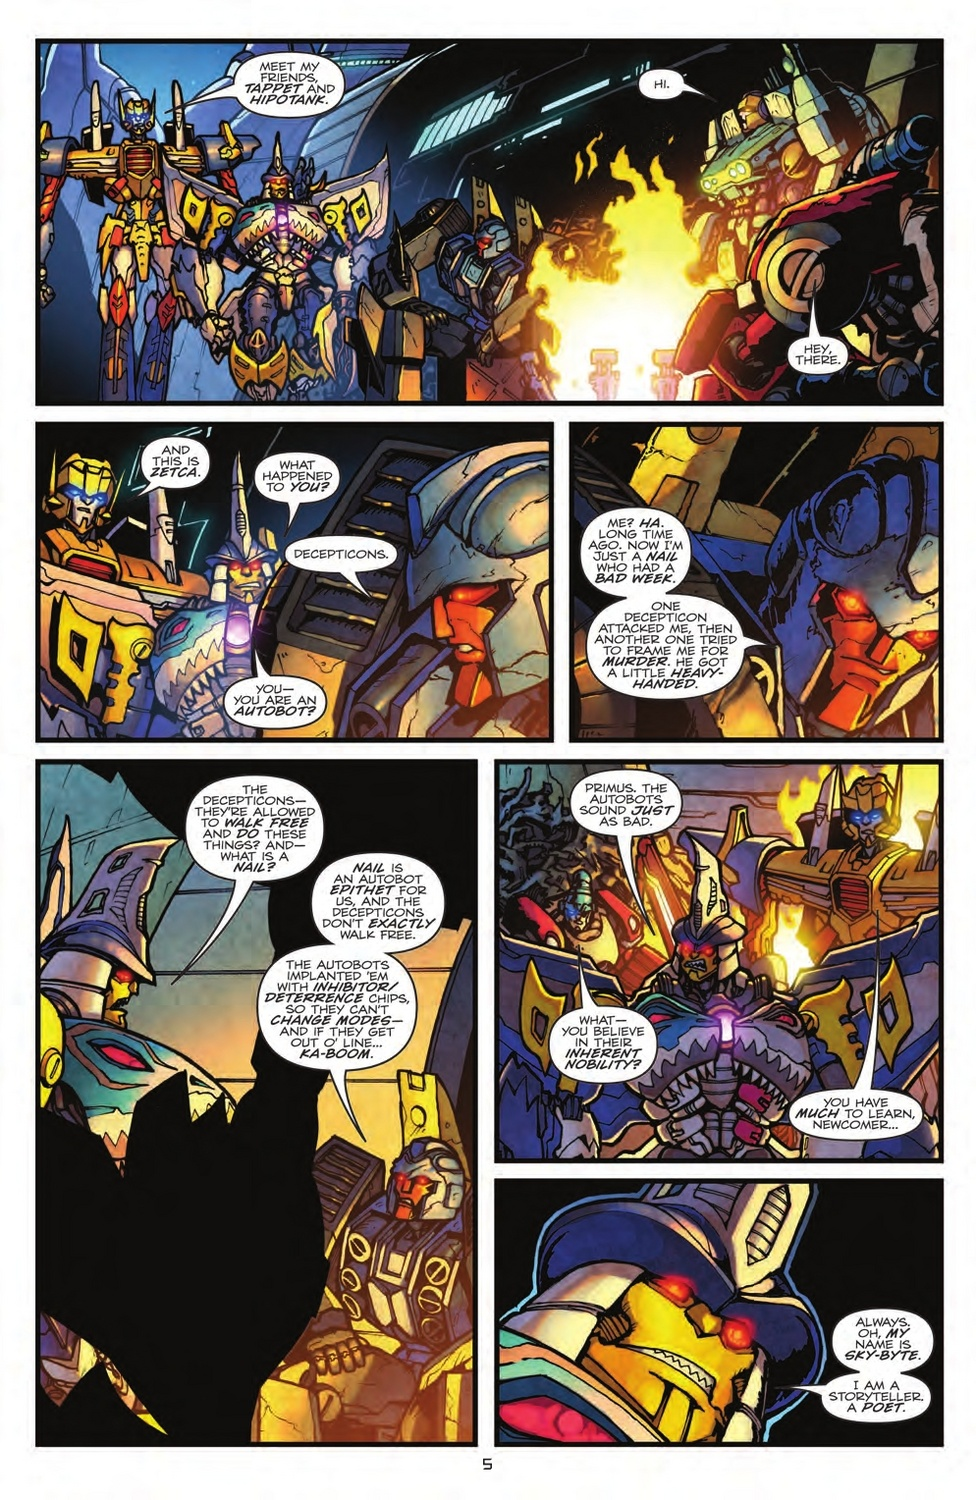 transformers-comics-robots-in-disguise-issue-5-page-5 Transformers Robots in Disguise #5